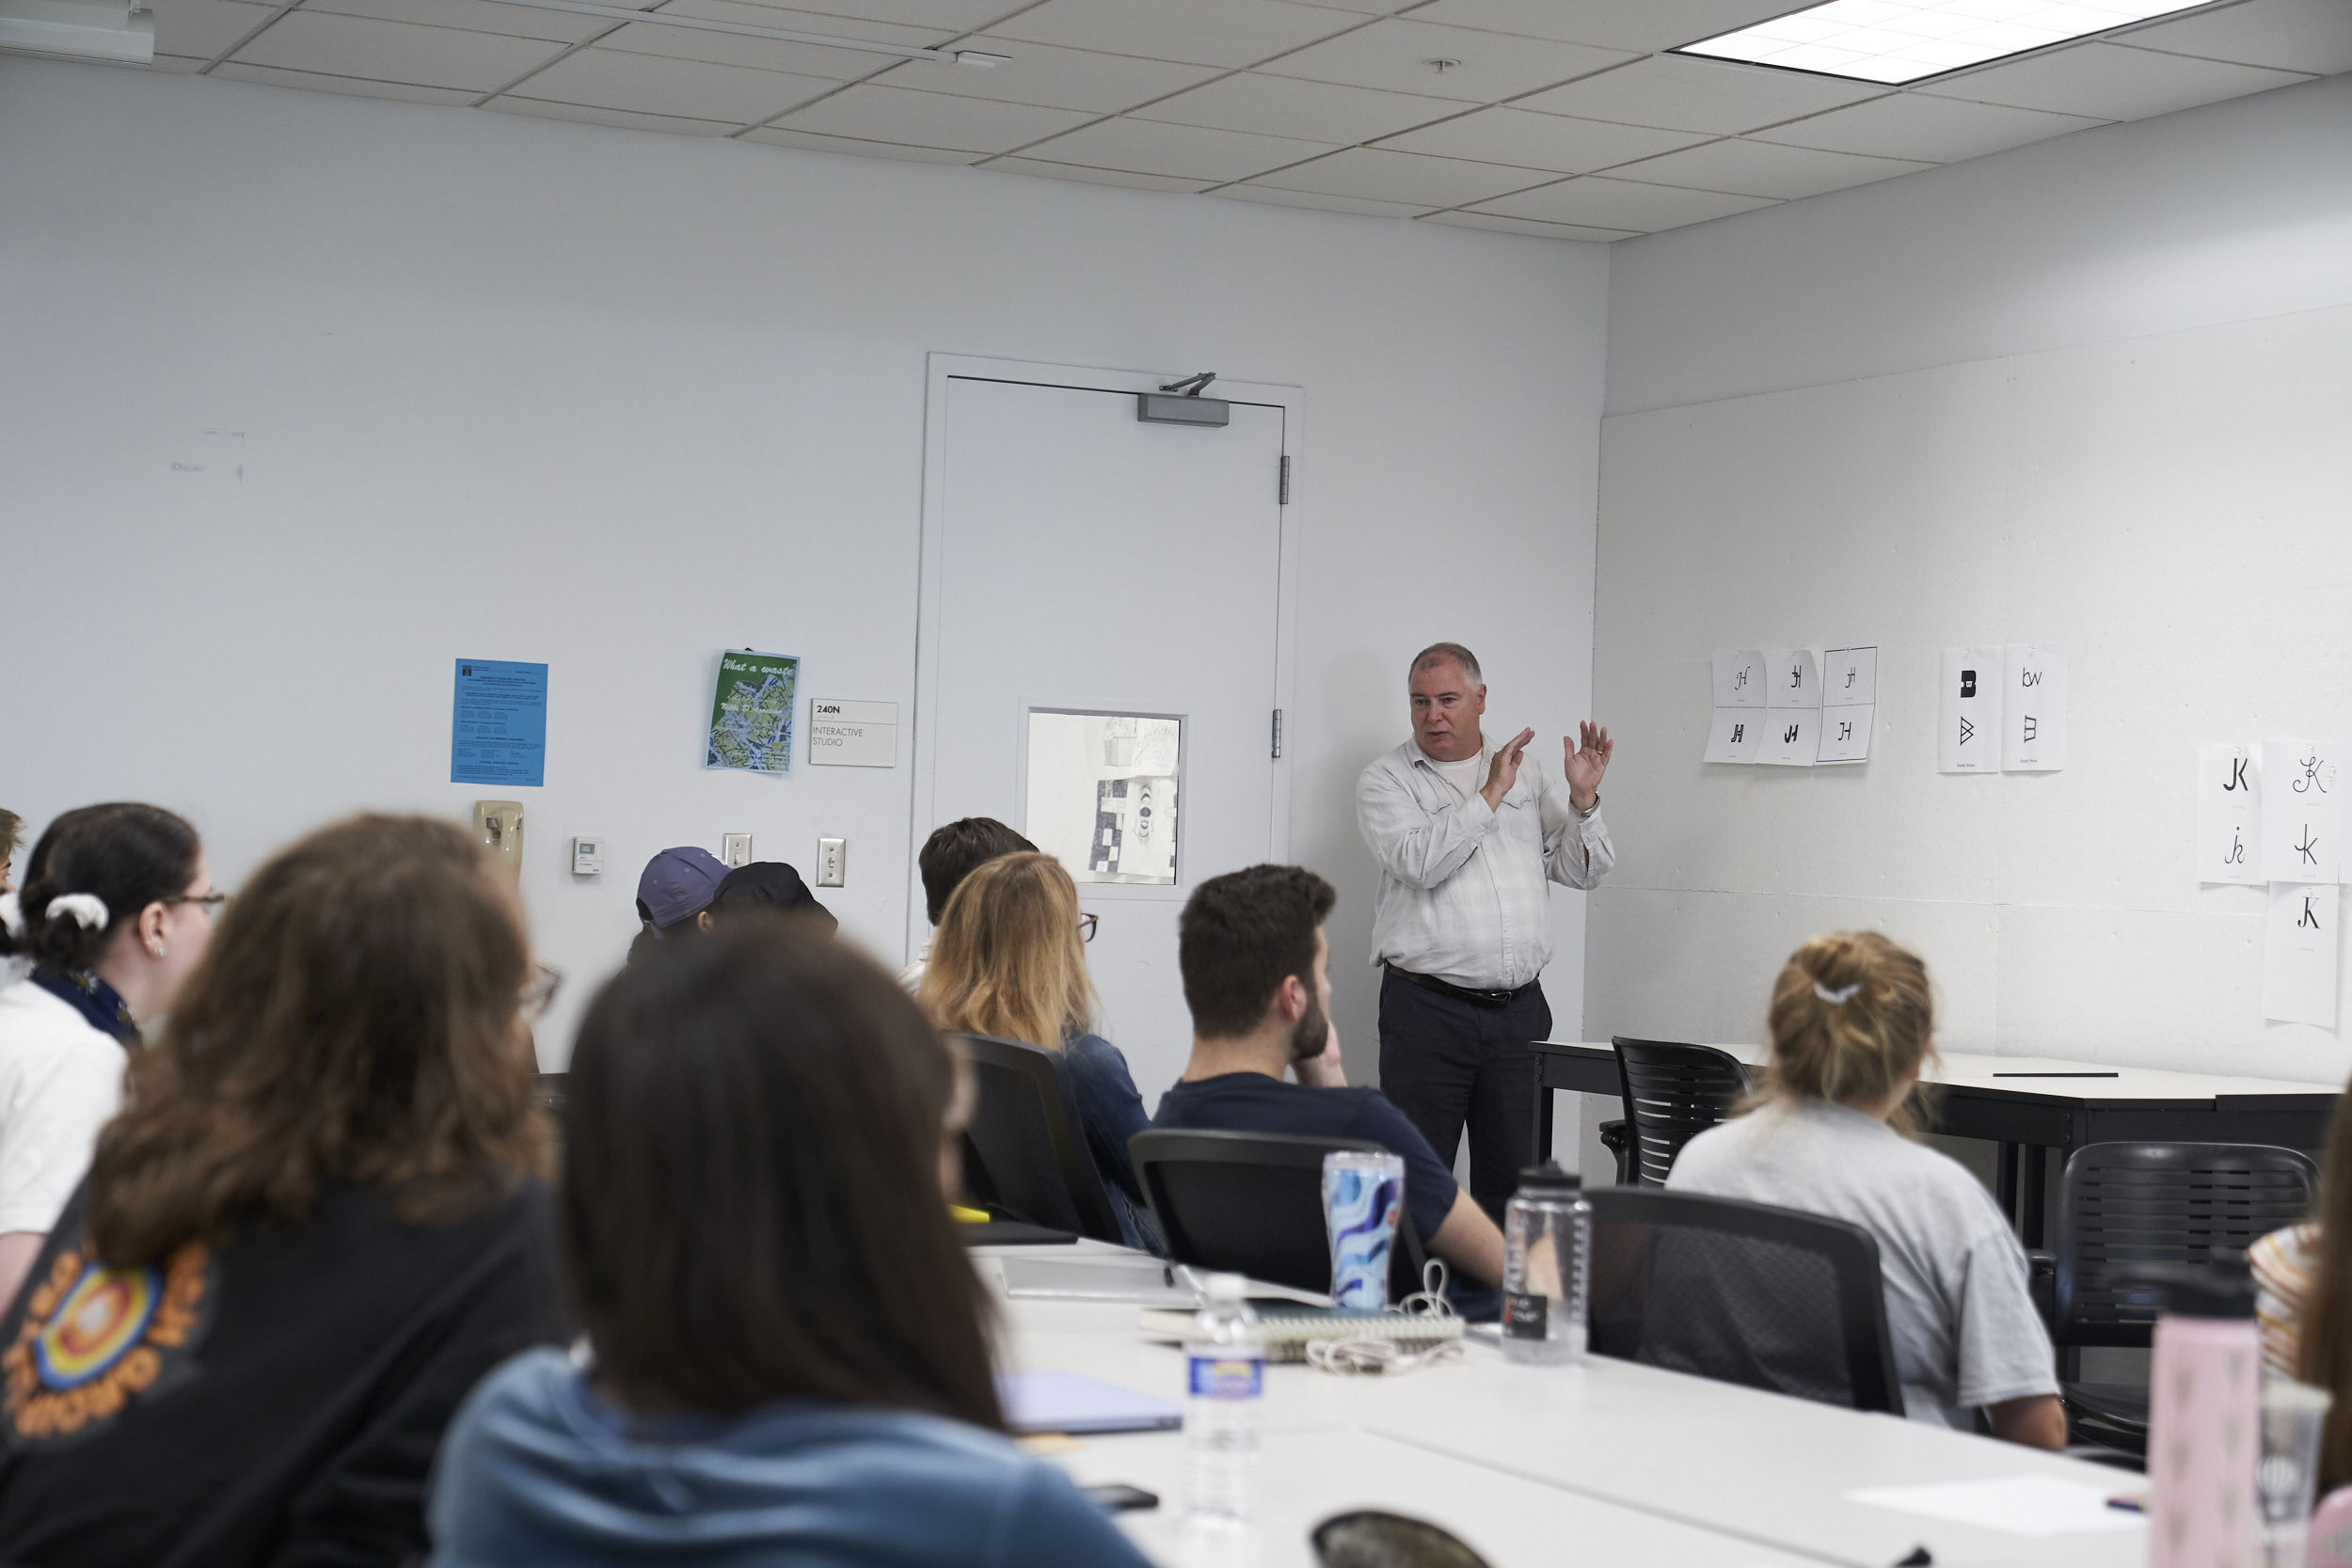 Students participate in a Graphic & Interactive Design class led by Dermot Mac Cormack, Associate Professor and Department Chair.